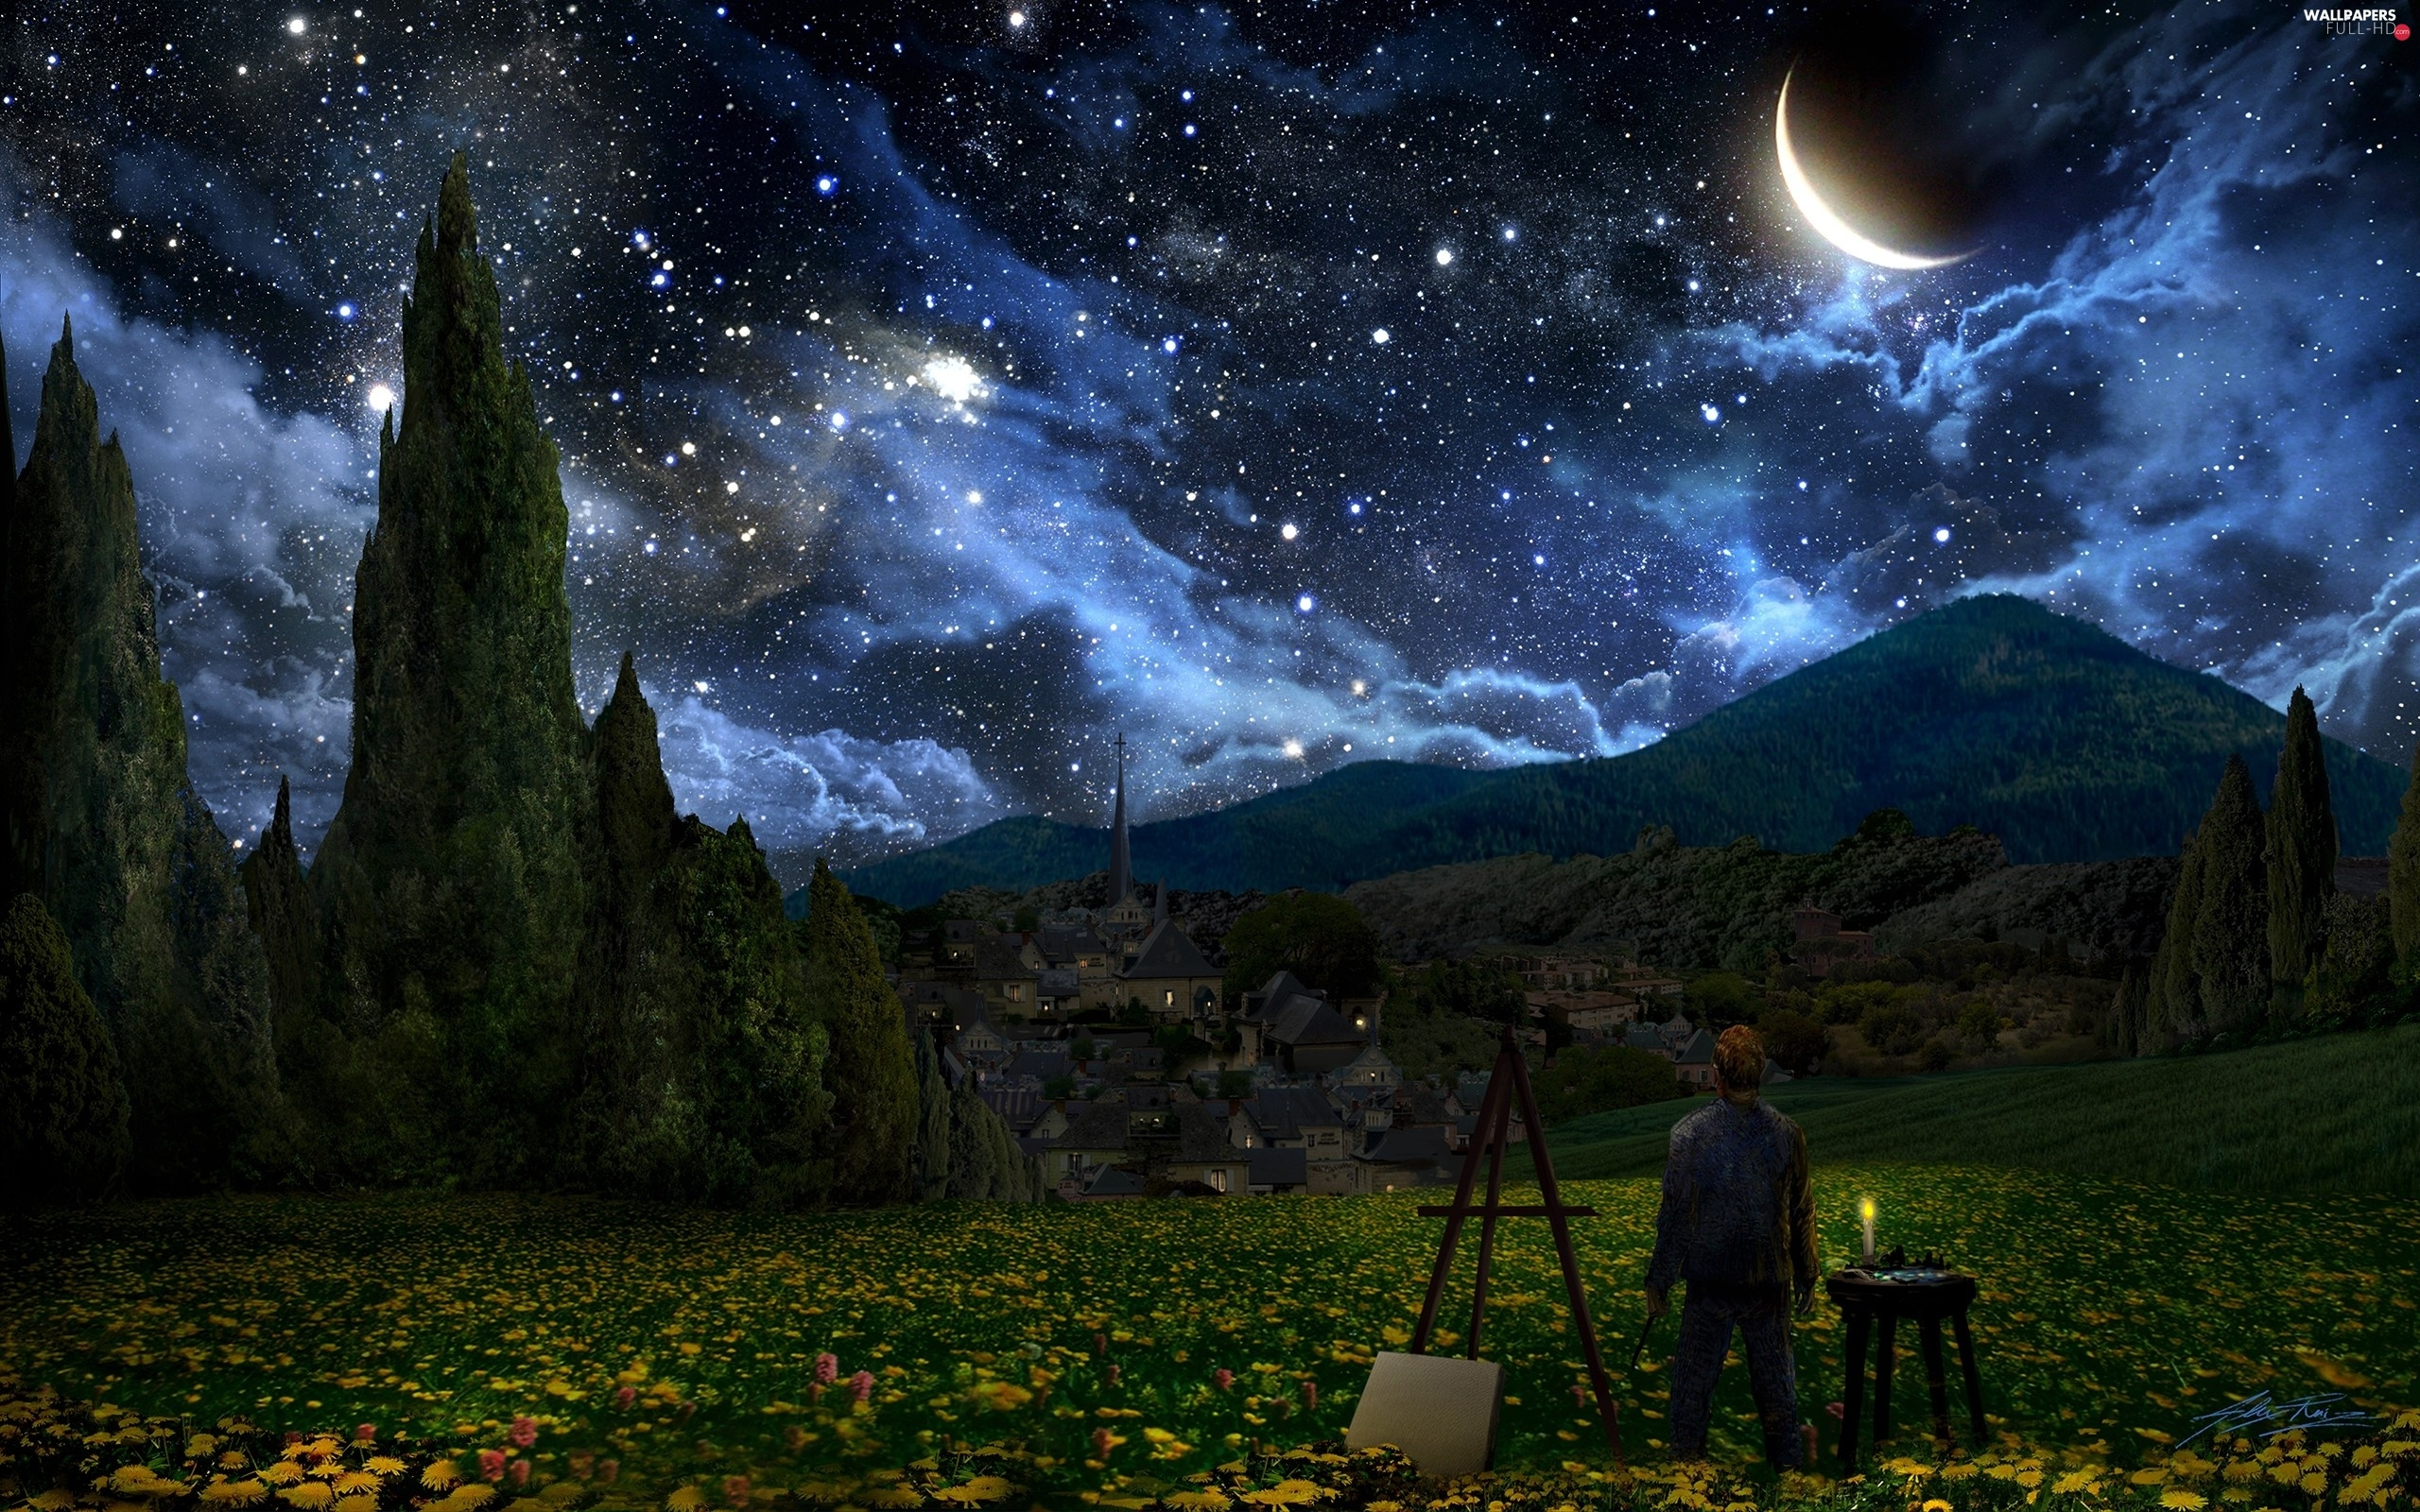 Gogh, Vincent, picture, moon, van, trees, viewes